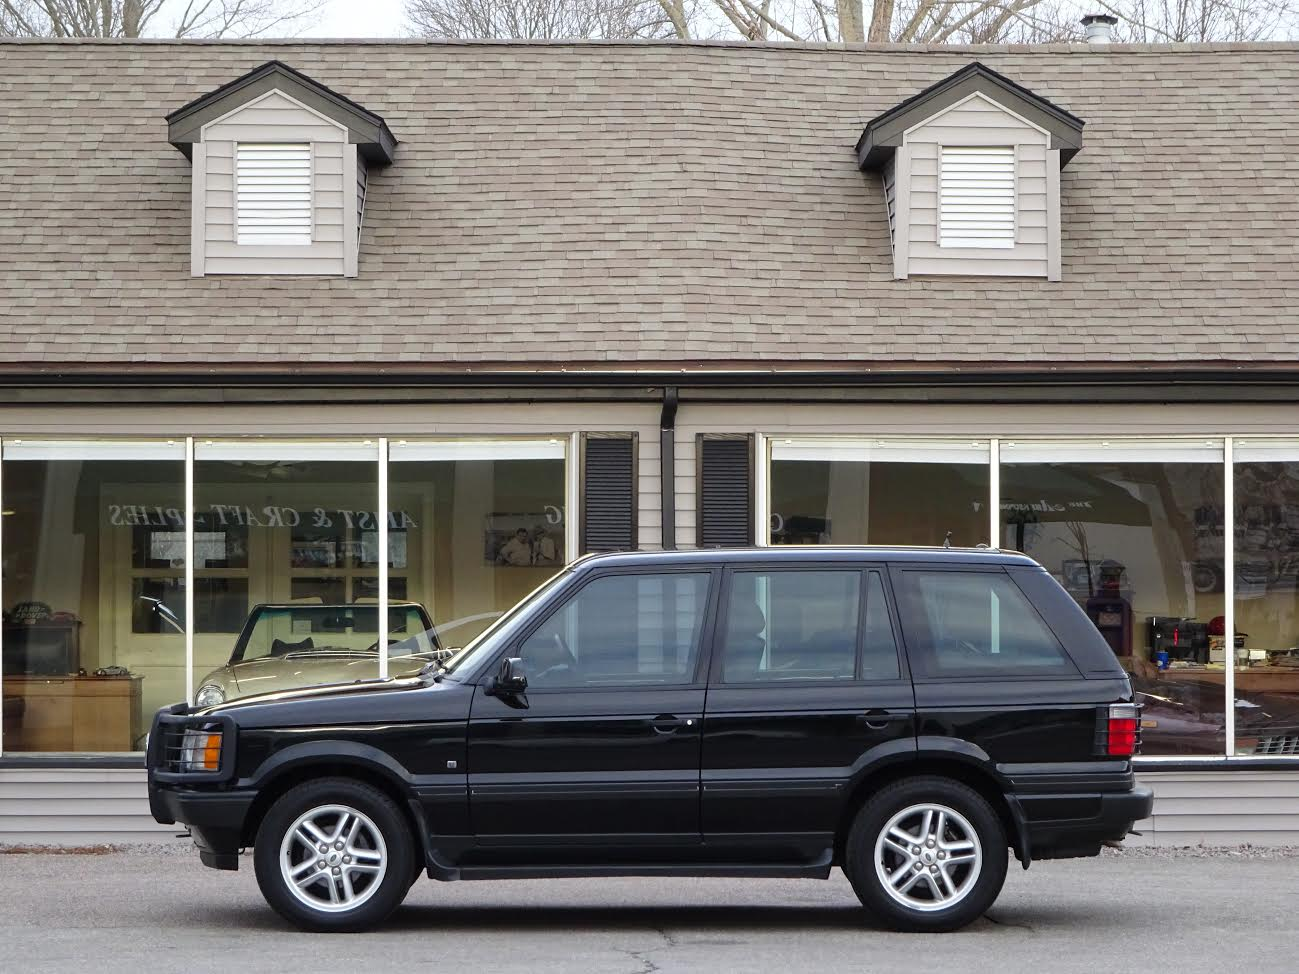 2001 Range Rover 4.6 HSE P38, Beluga Black with black, 4.6 litre V8 gas  engine, automatic transmission, permanent 4 wheel drive with high-low range,  ...